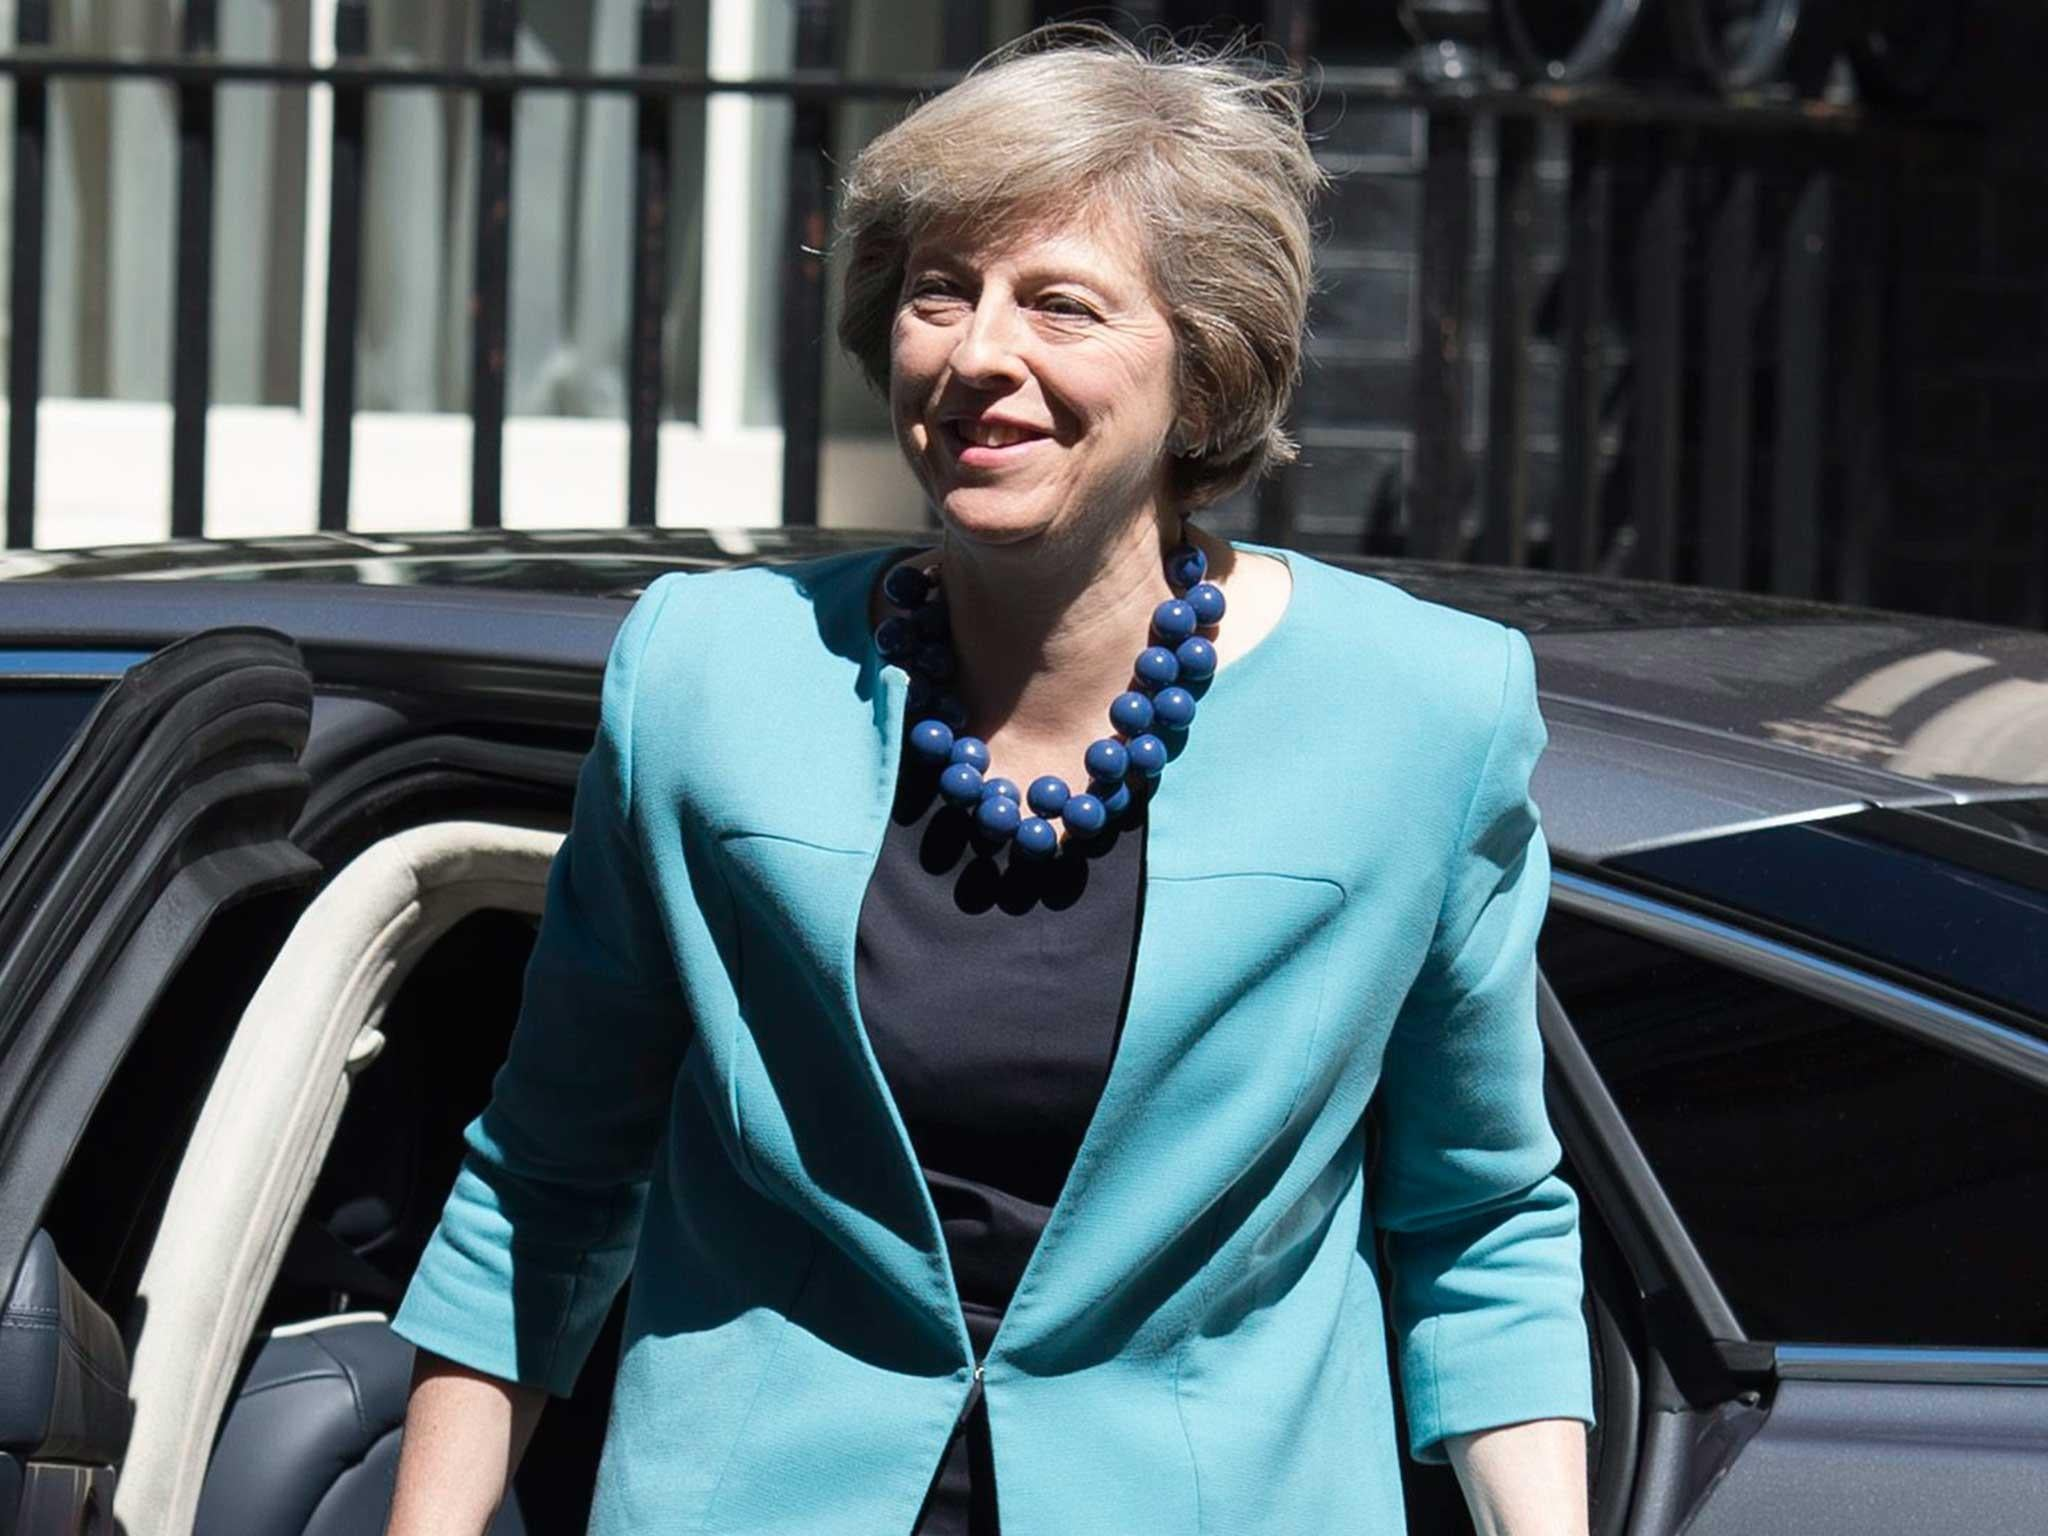 Theresa May reshuffle live: Andrea Leadsom heads Defra as Jeremy Hunt remains Health Secretary - latest news